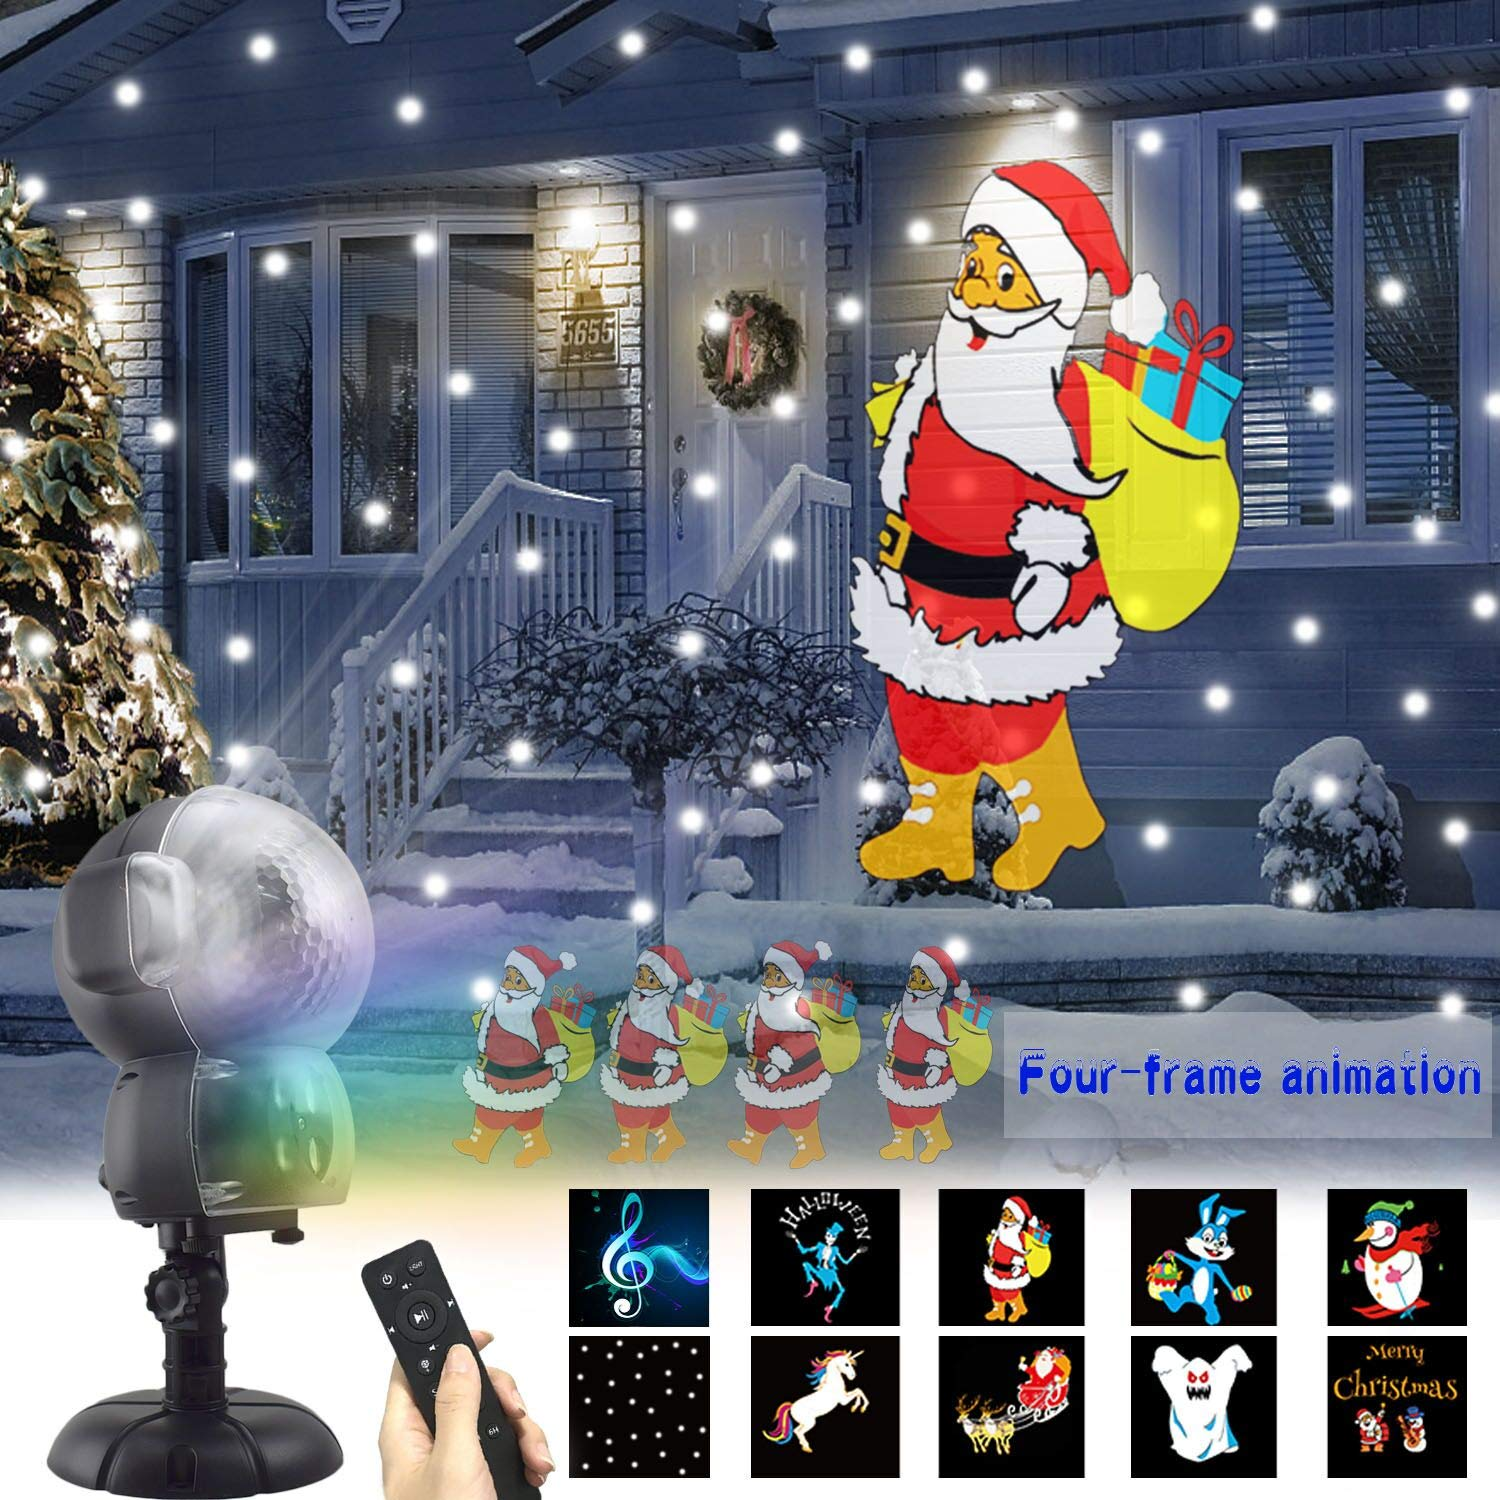 UKEER Christmas Projector lights Outdoor Music Animated Snow